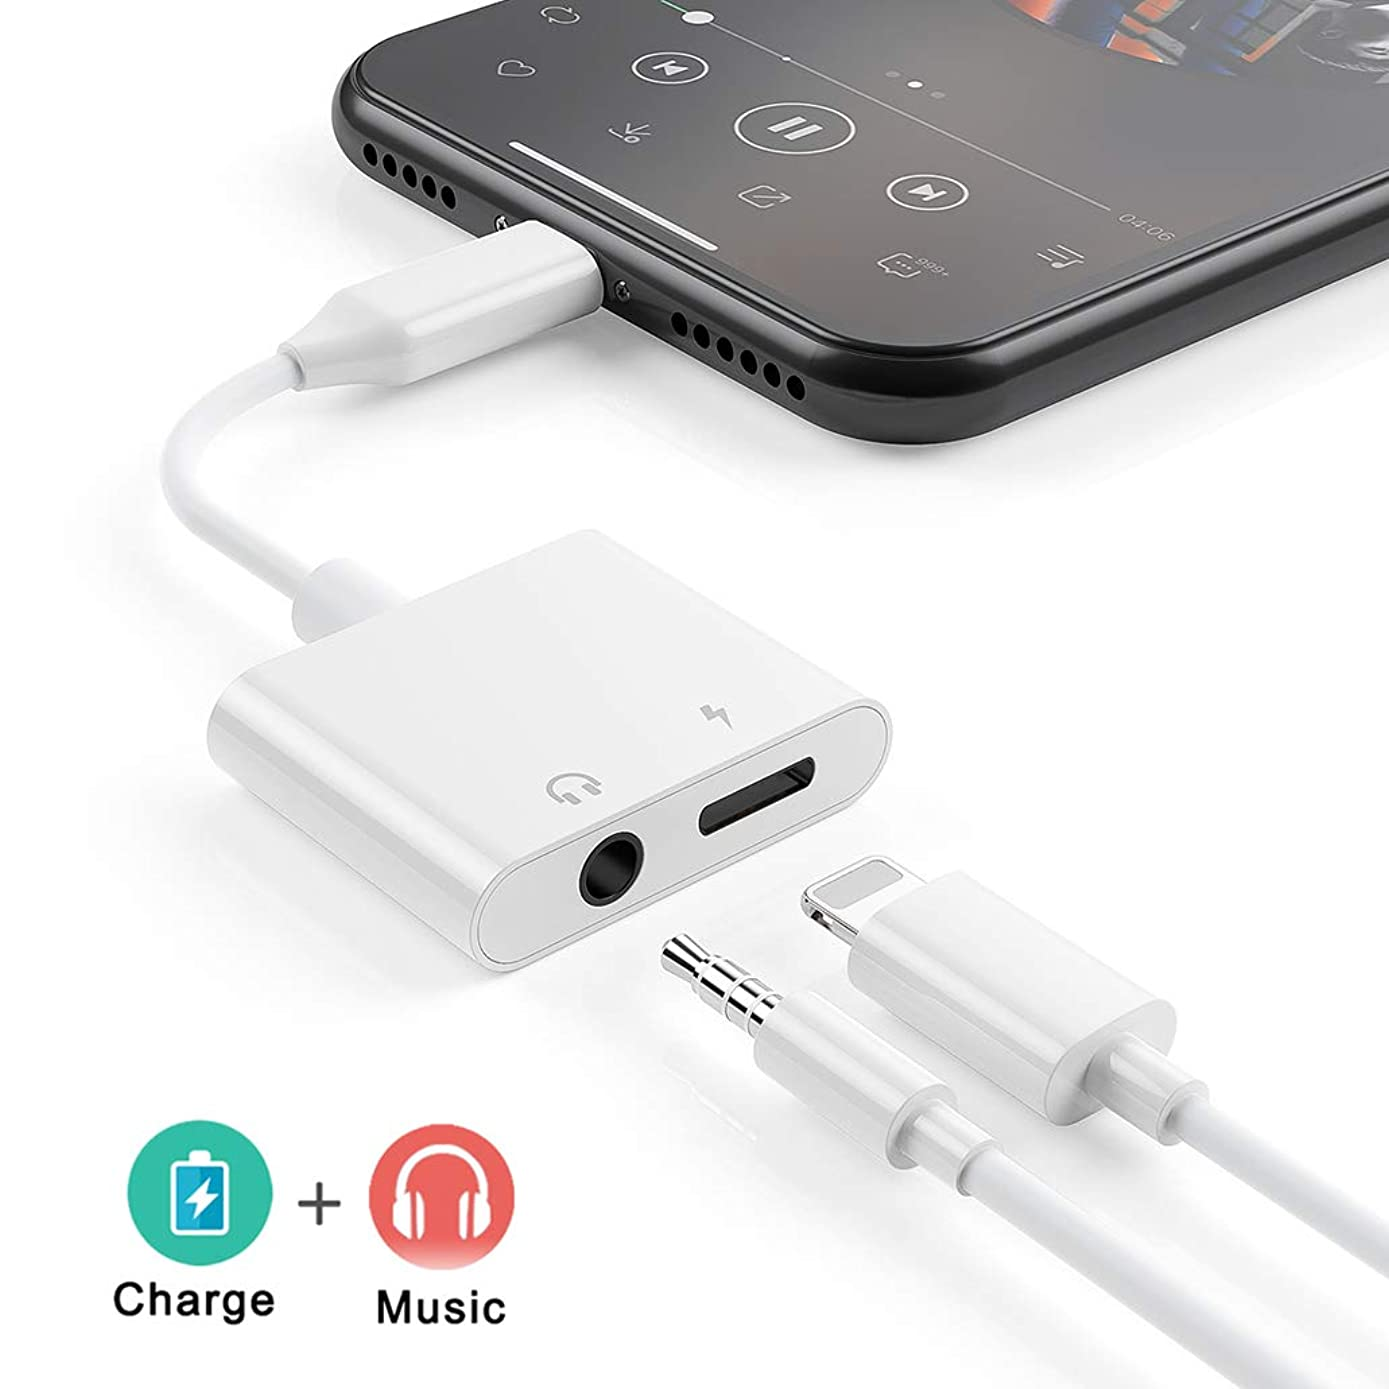 Adapter Headphones for iPhone 7 Charge and Audio Splitter 2 in 1 Earphone AUX Music Cable Charger Connect for iPhone X/XS/8/8 Plus/7/7 3.5mm Female Stereo Audio Headphone Jack Adapter Support iOS 12